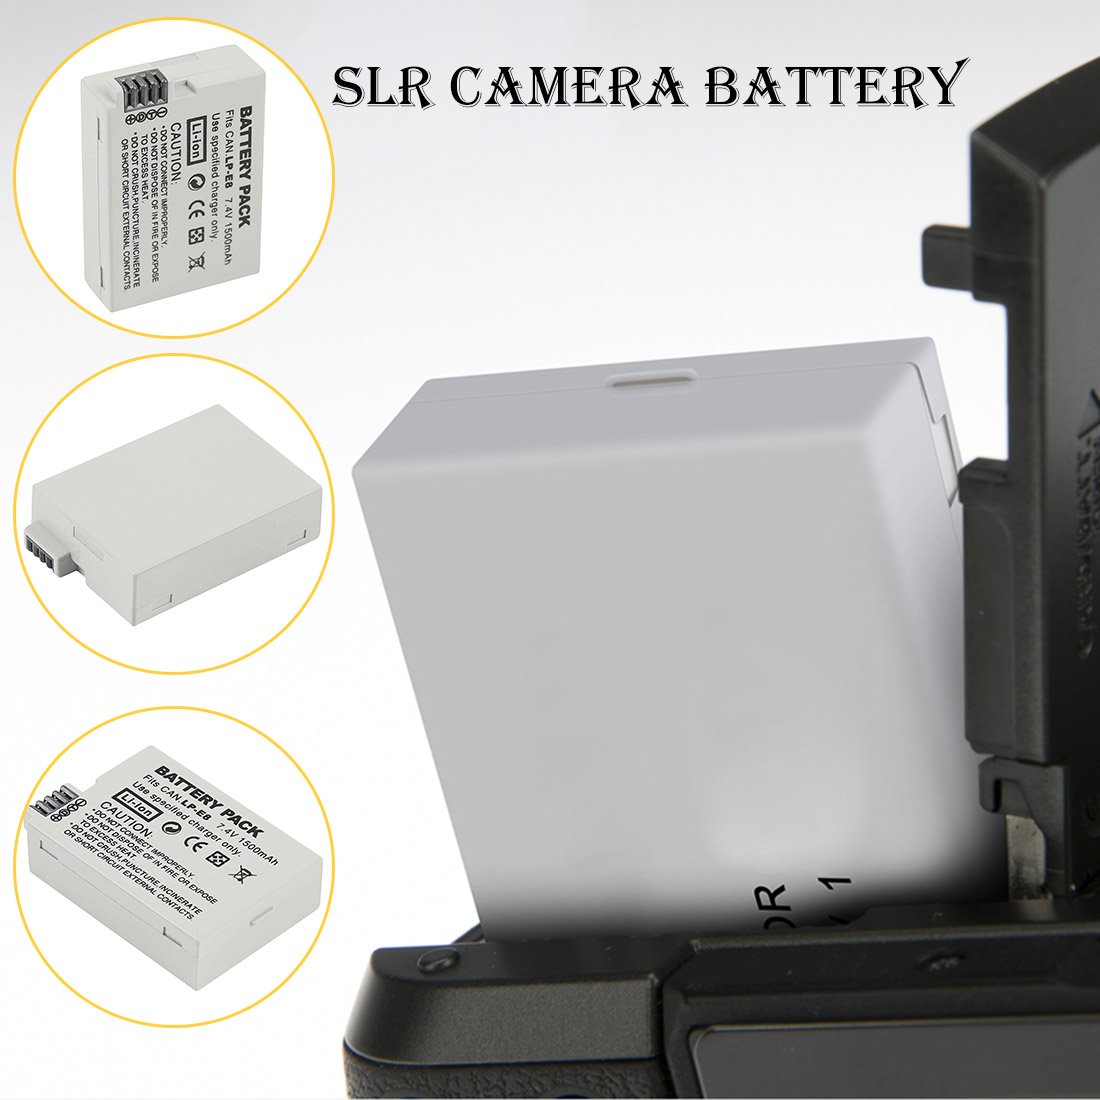 LP-E8 LPE8 1500mah Camera Rechargeable <font><b>Battery</b></font> <font><b>Batteries</b></font> For <font><b>Canon</b></font> <font><b>550D</b></font> 600D 650D 700D X4 X5 X6i X7i T2i T3i T4i T5i DSLR Camera image